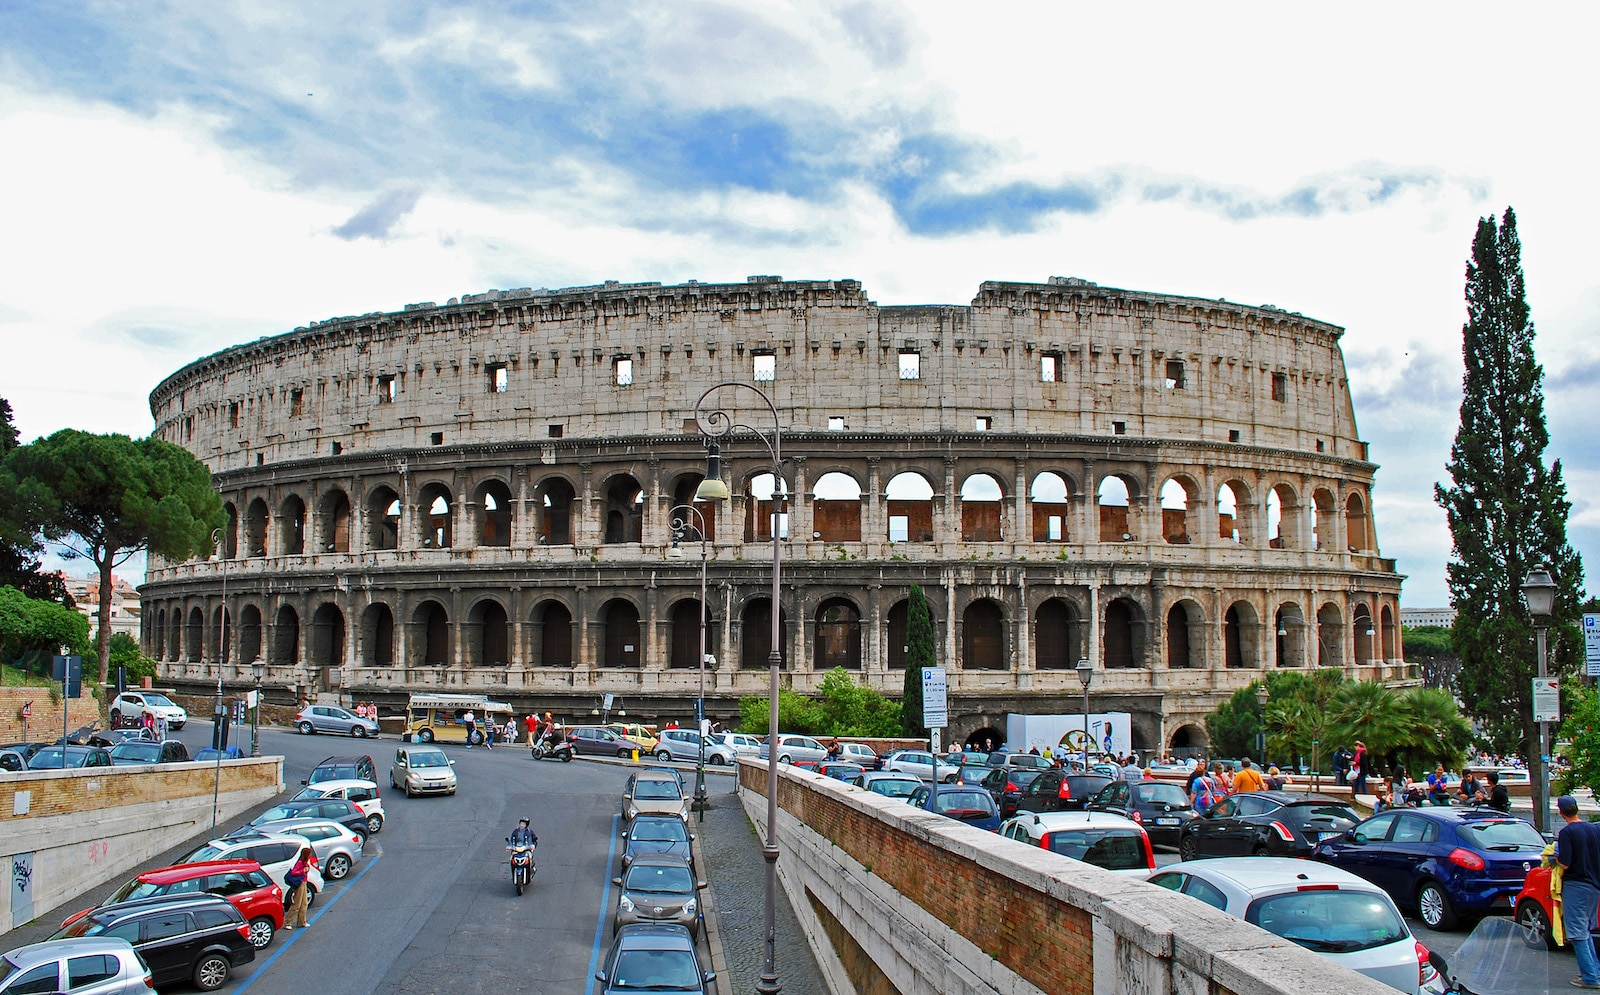 Colosseum in Italy with Road leading up to lined with cars